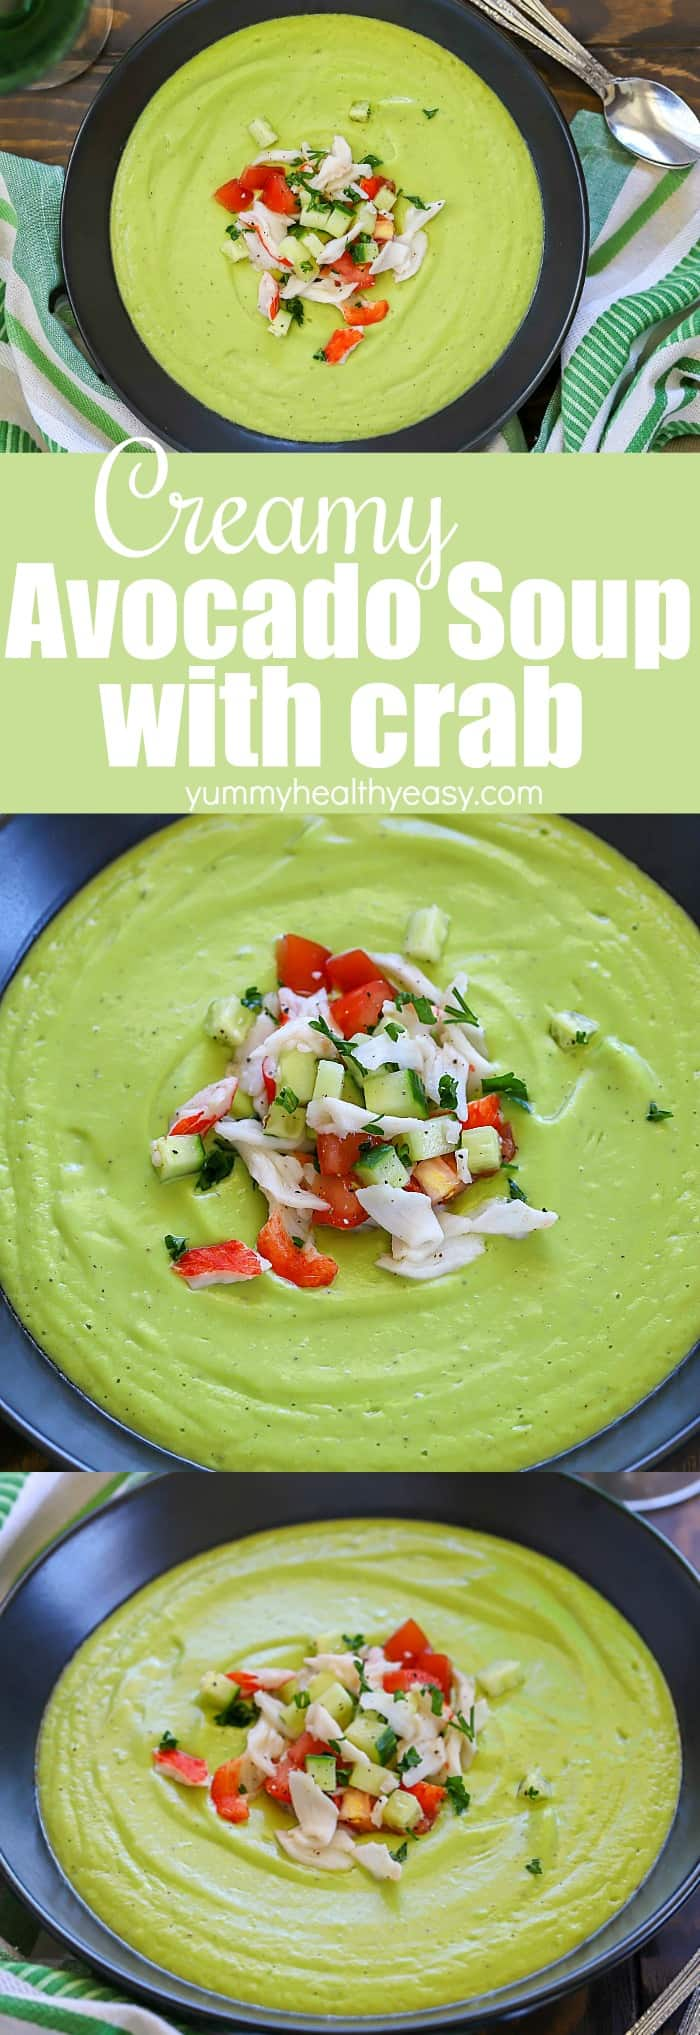 Toss your avocados in the blender and make this Avocado Soup with Crab! This creamy blended concoction is best served with a topping of crab and cucumber mixture to make a delicious meal! Only a few ingredients needed and it's easy to make but tastes like restaurant quality! (The soup is dairy-free and vegetarian without the crab topping.) #ad #avocado #soup #dinner #recipe #healthy #crab #vitamix #easy #dairyfree #vegetarian via @jennikolaus